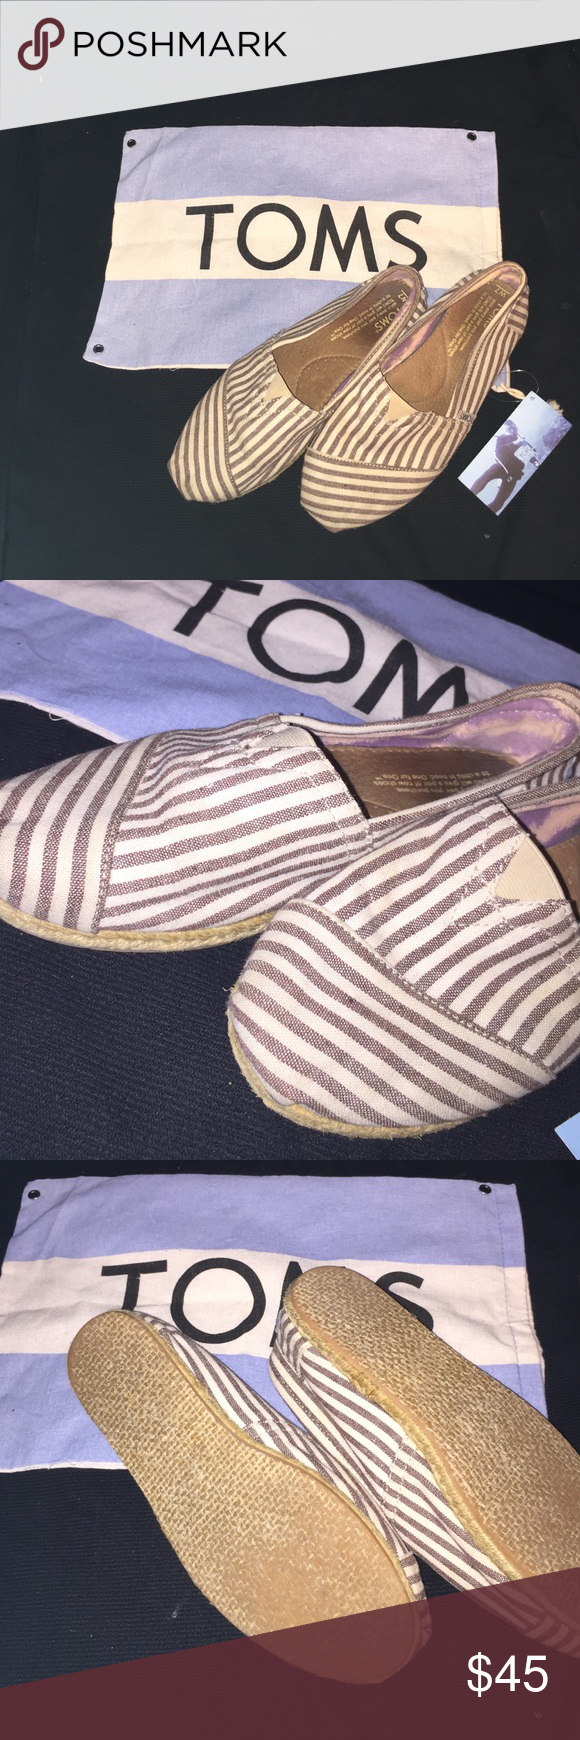 Super cute TOMS! Adorable striped white and brown TOMS! Doesn't come with the bag! But great condition! See pics ! Toms Shoes Flats & Loafers